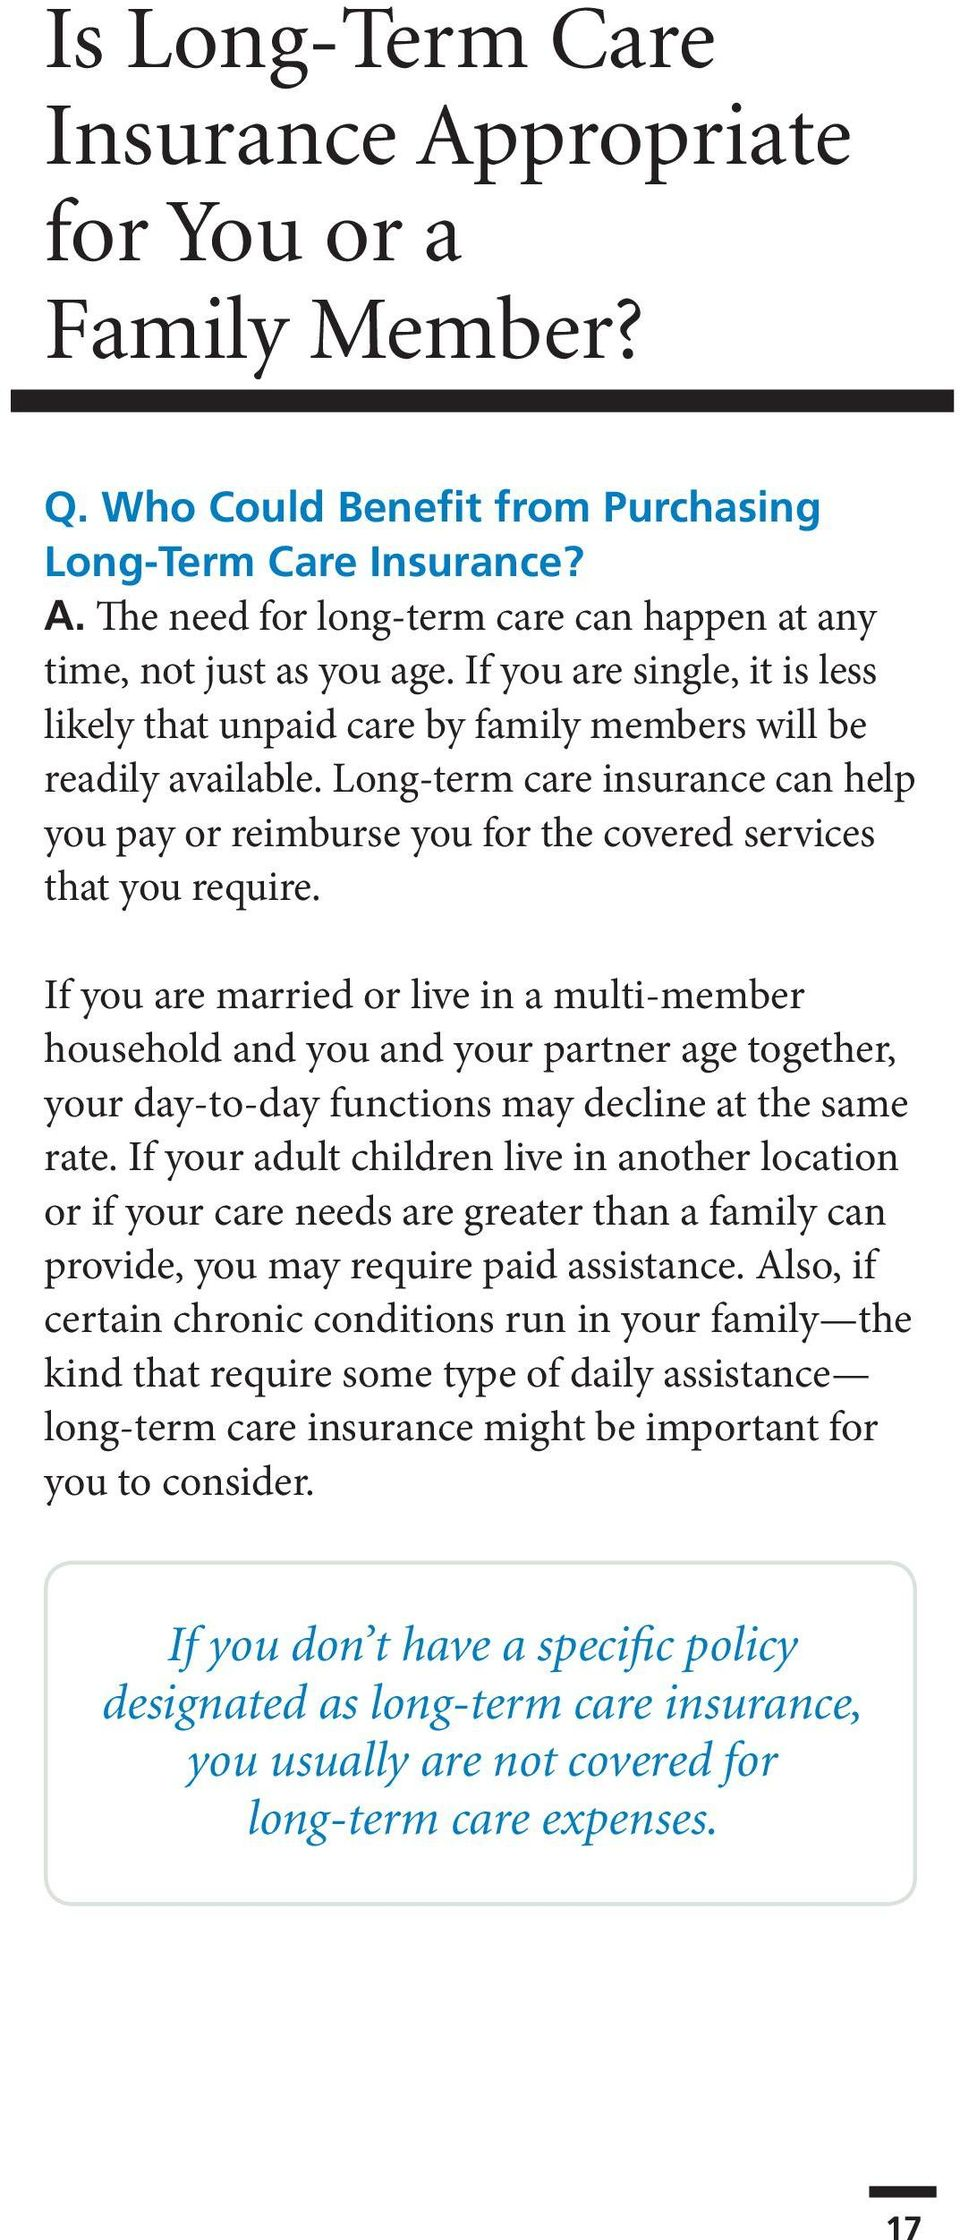 If you are married or live in a multi-member household and you and your partner age together, your day-to-day functions may decline at the same rate.